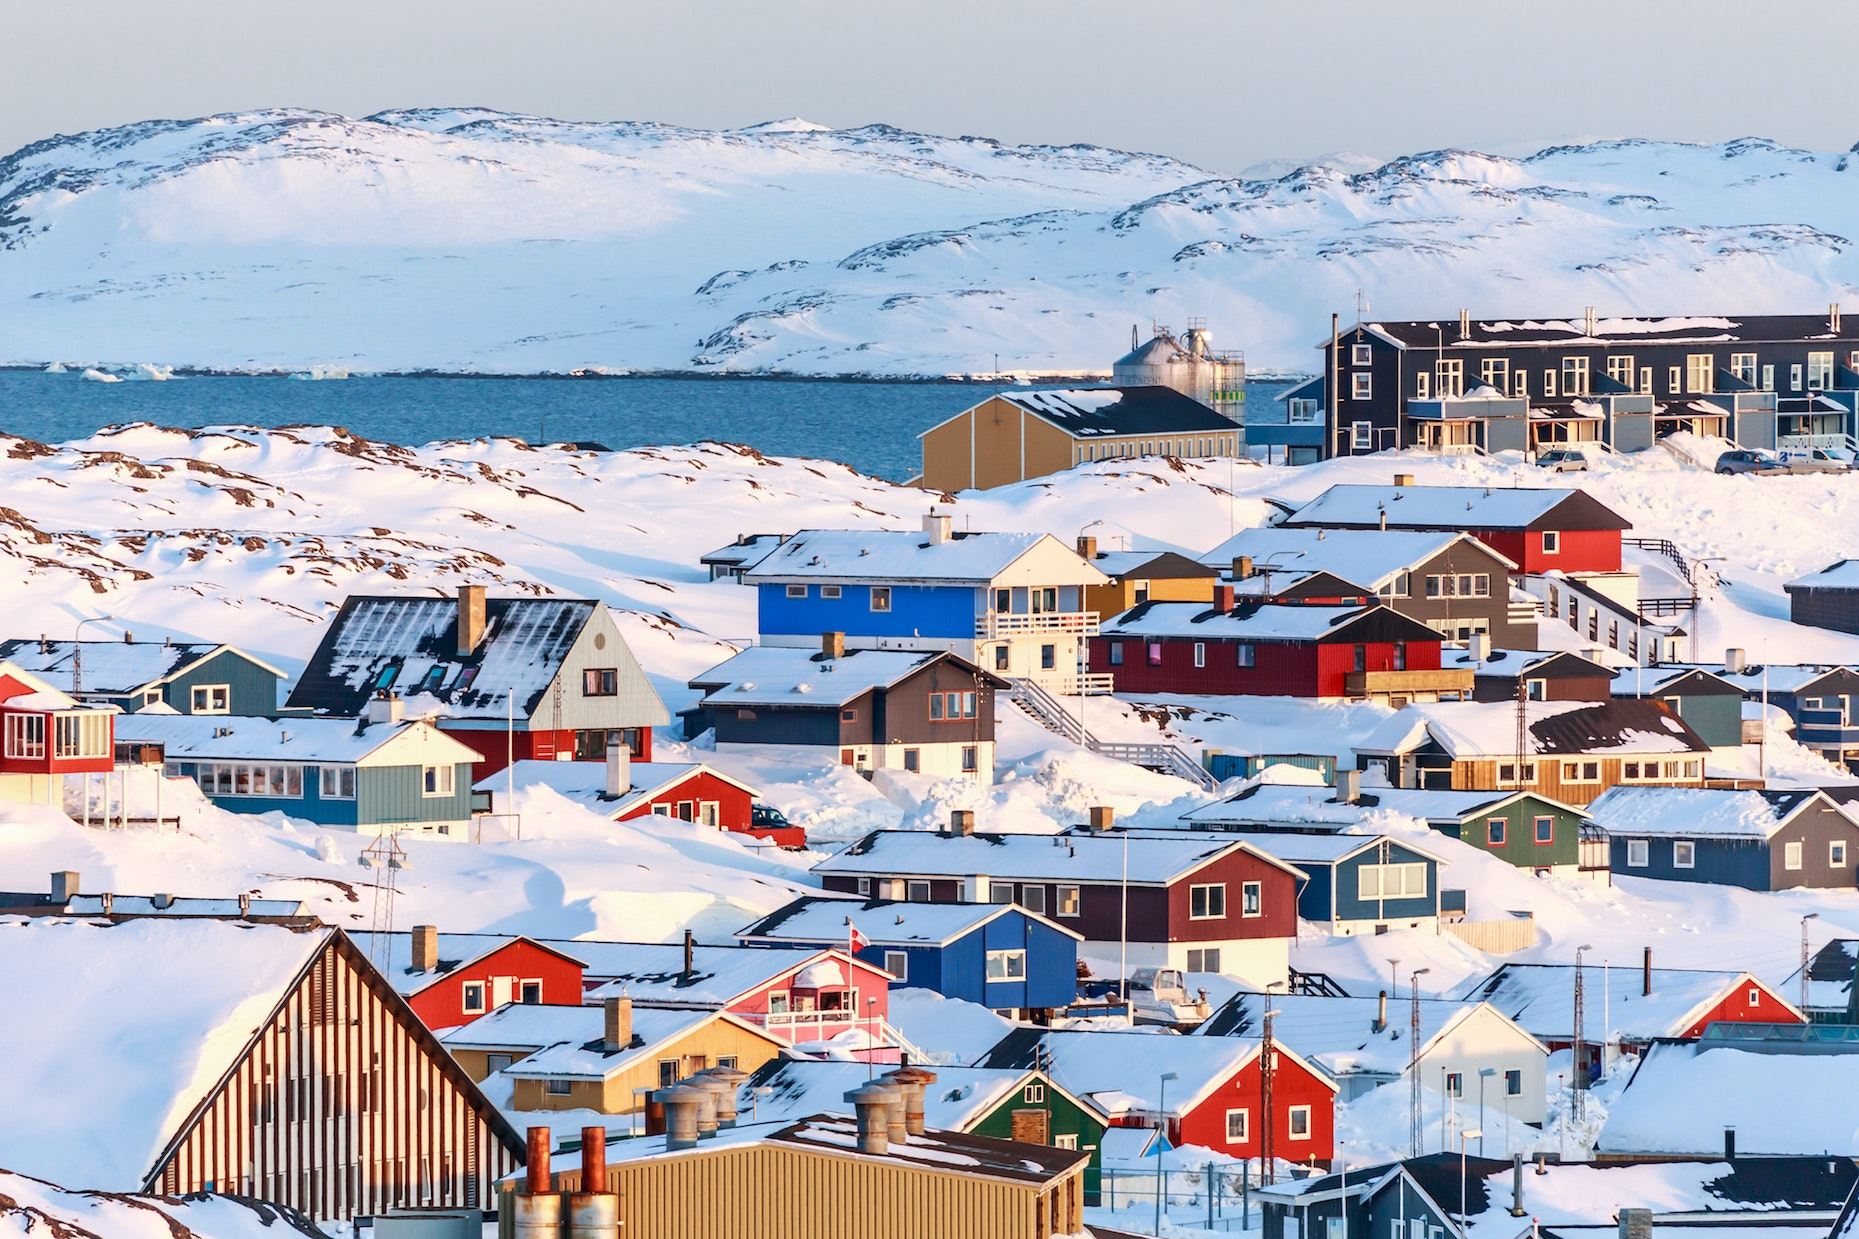 Cruise all the way up to Nuuk, Greenland, on a Princess cruise.